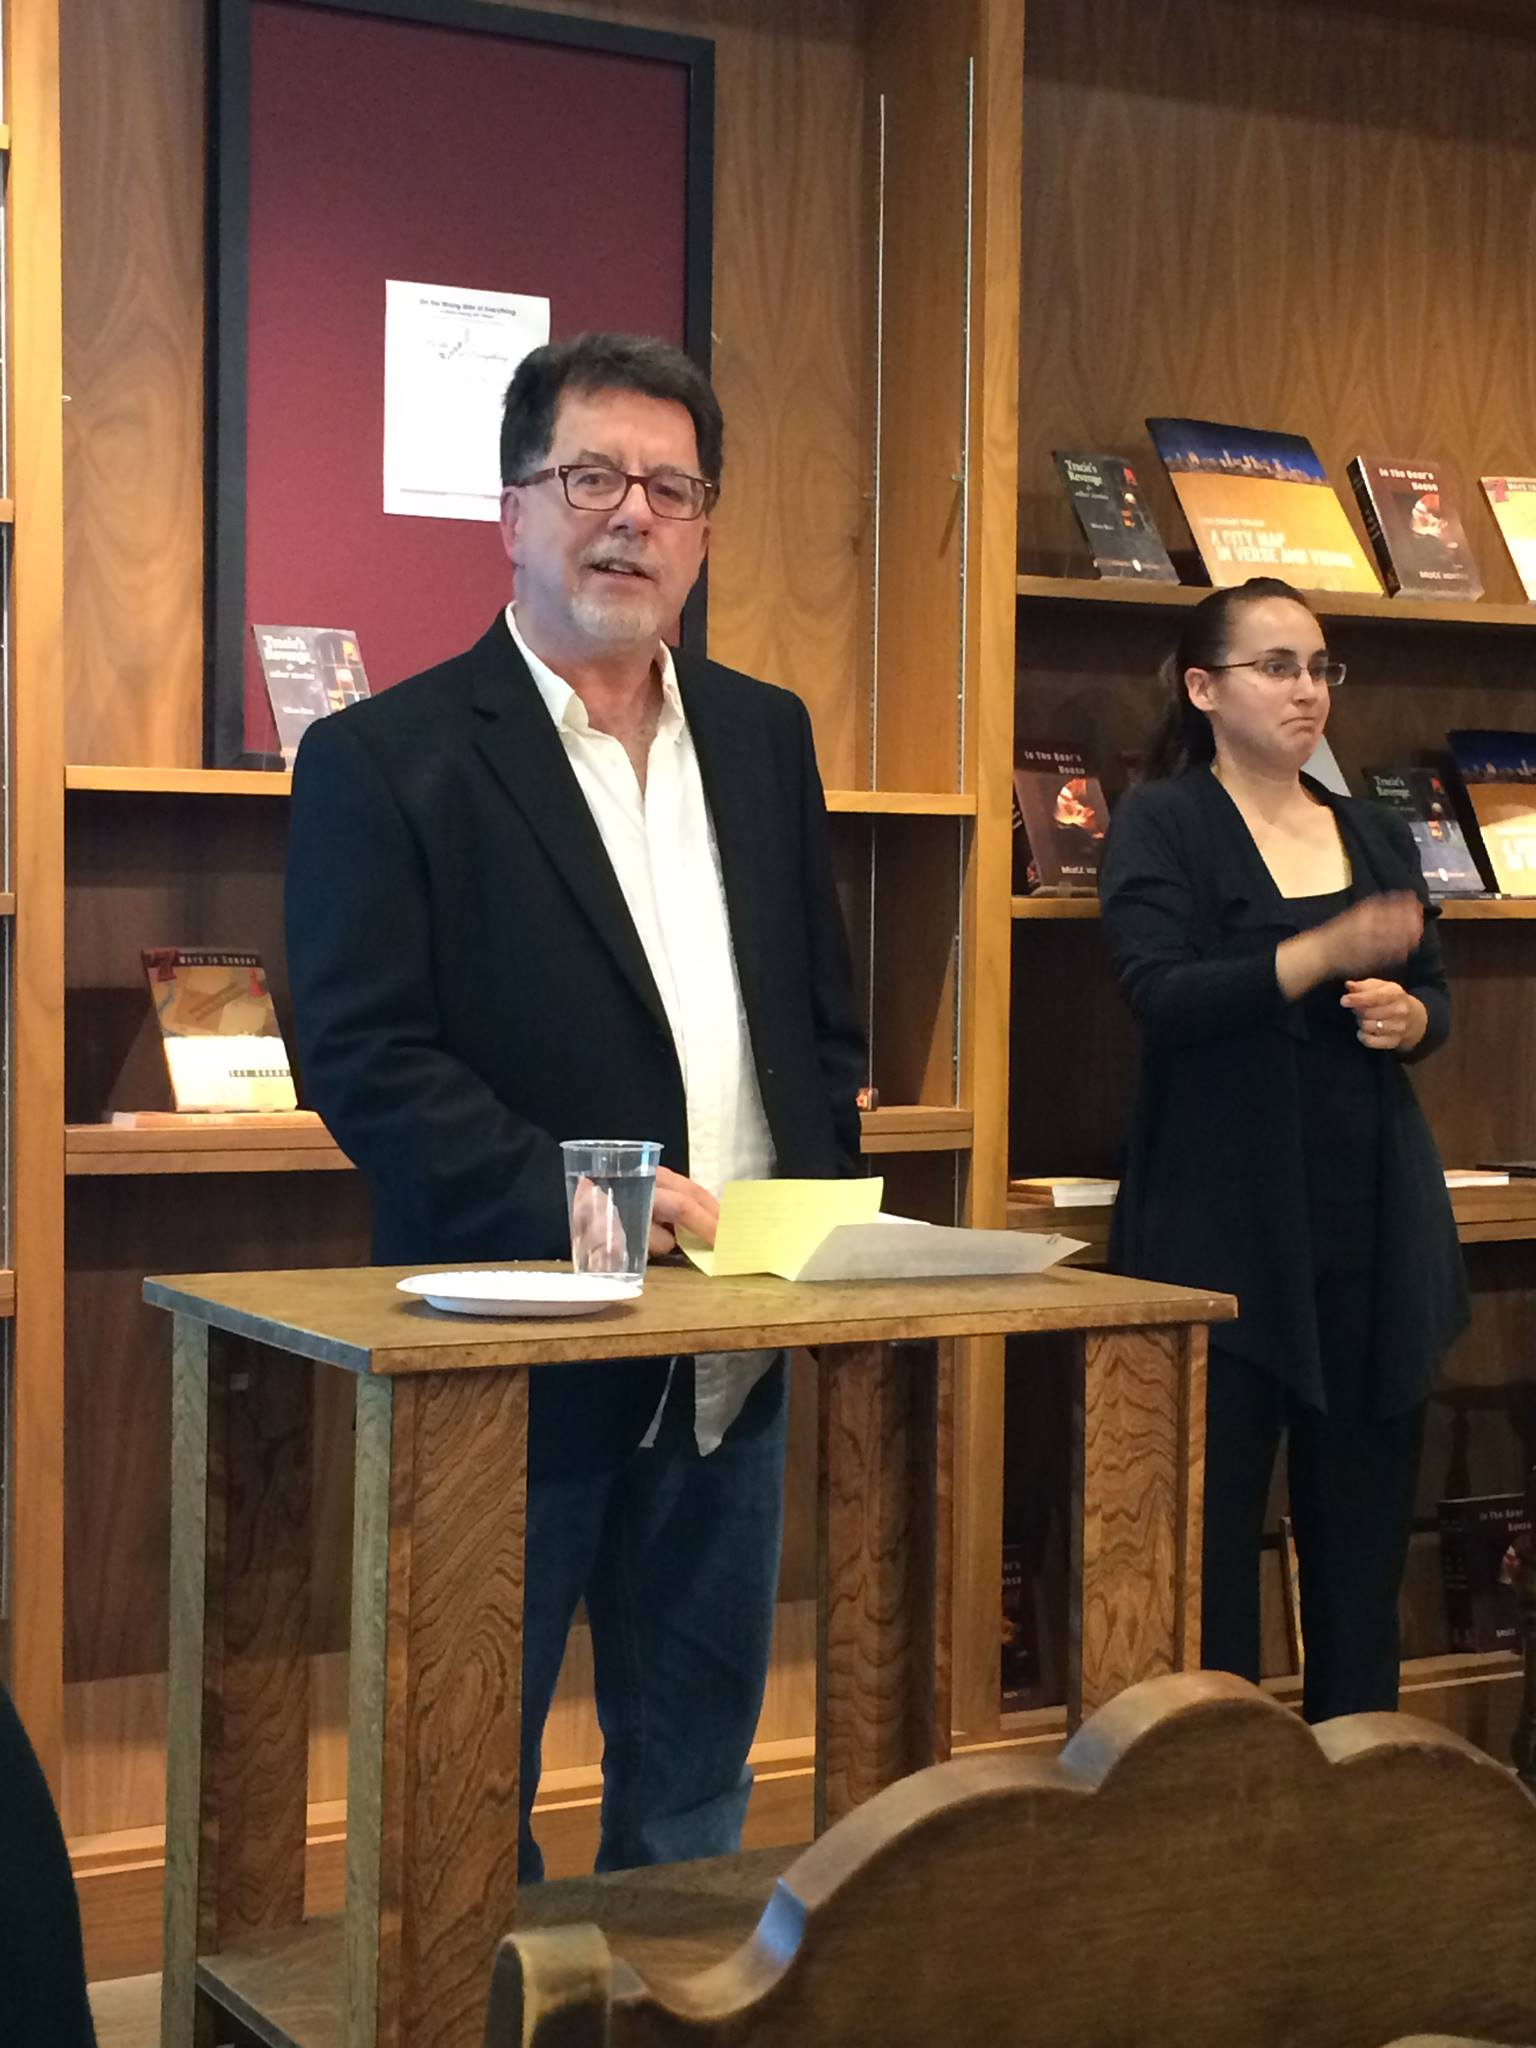 Bruce mcing a literary kitchen party at Shelf Life Books, 2014 with ASL-interpreter and a captioner (off camera). (Image: A dark-haired man in glasses wearing a dark sports jacket at a podium beside a young woman signing for the audience. In th background are books on display.)